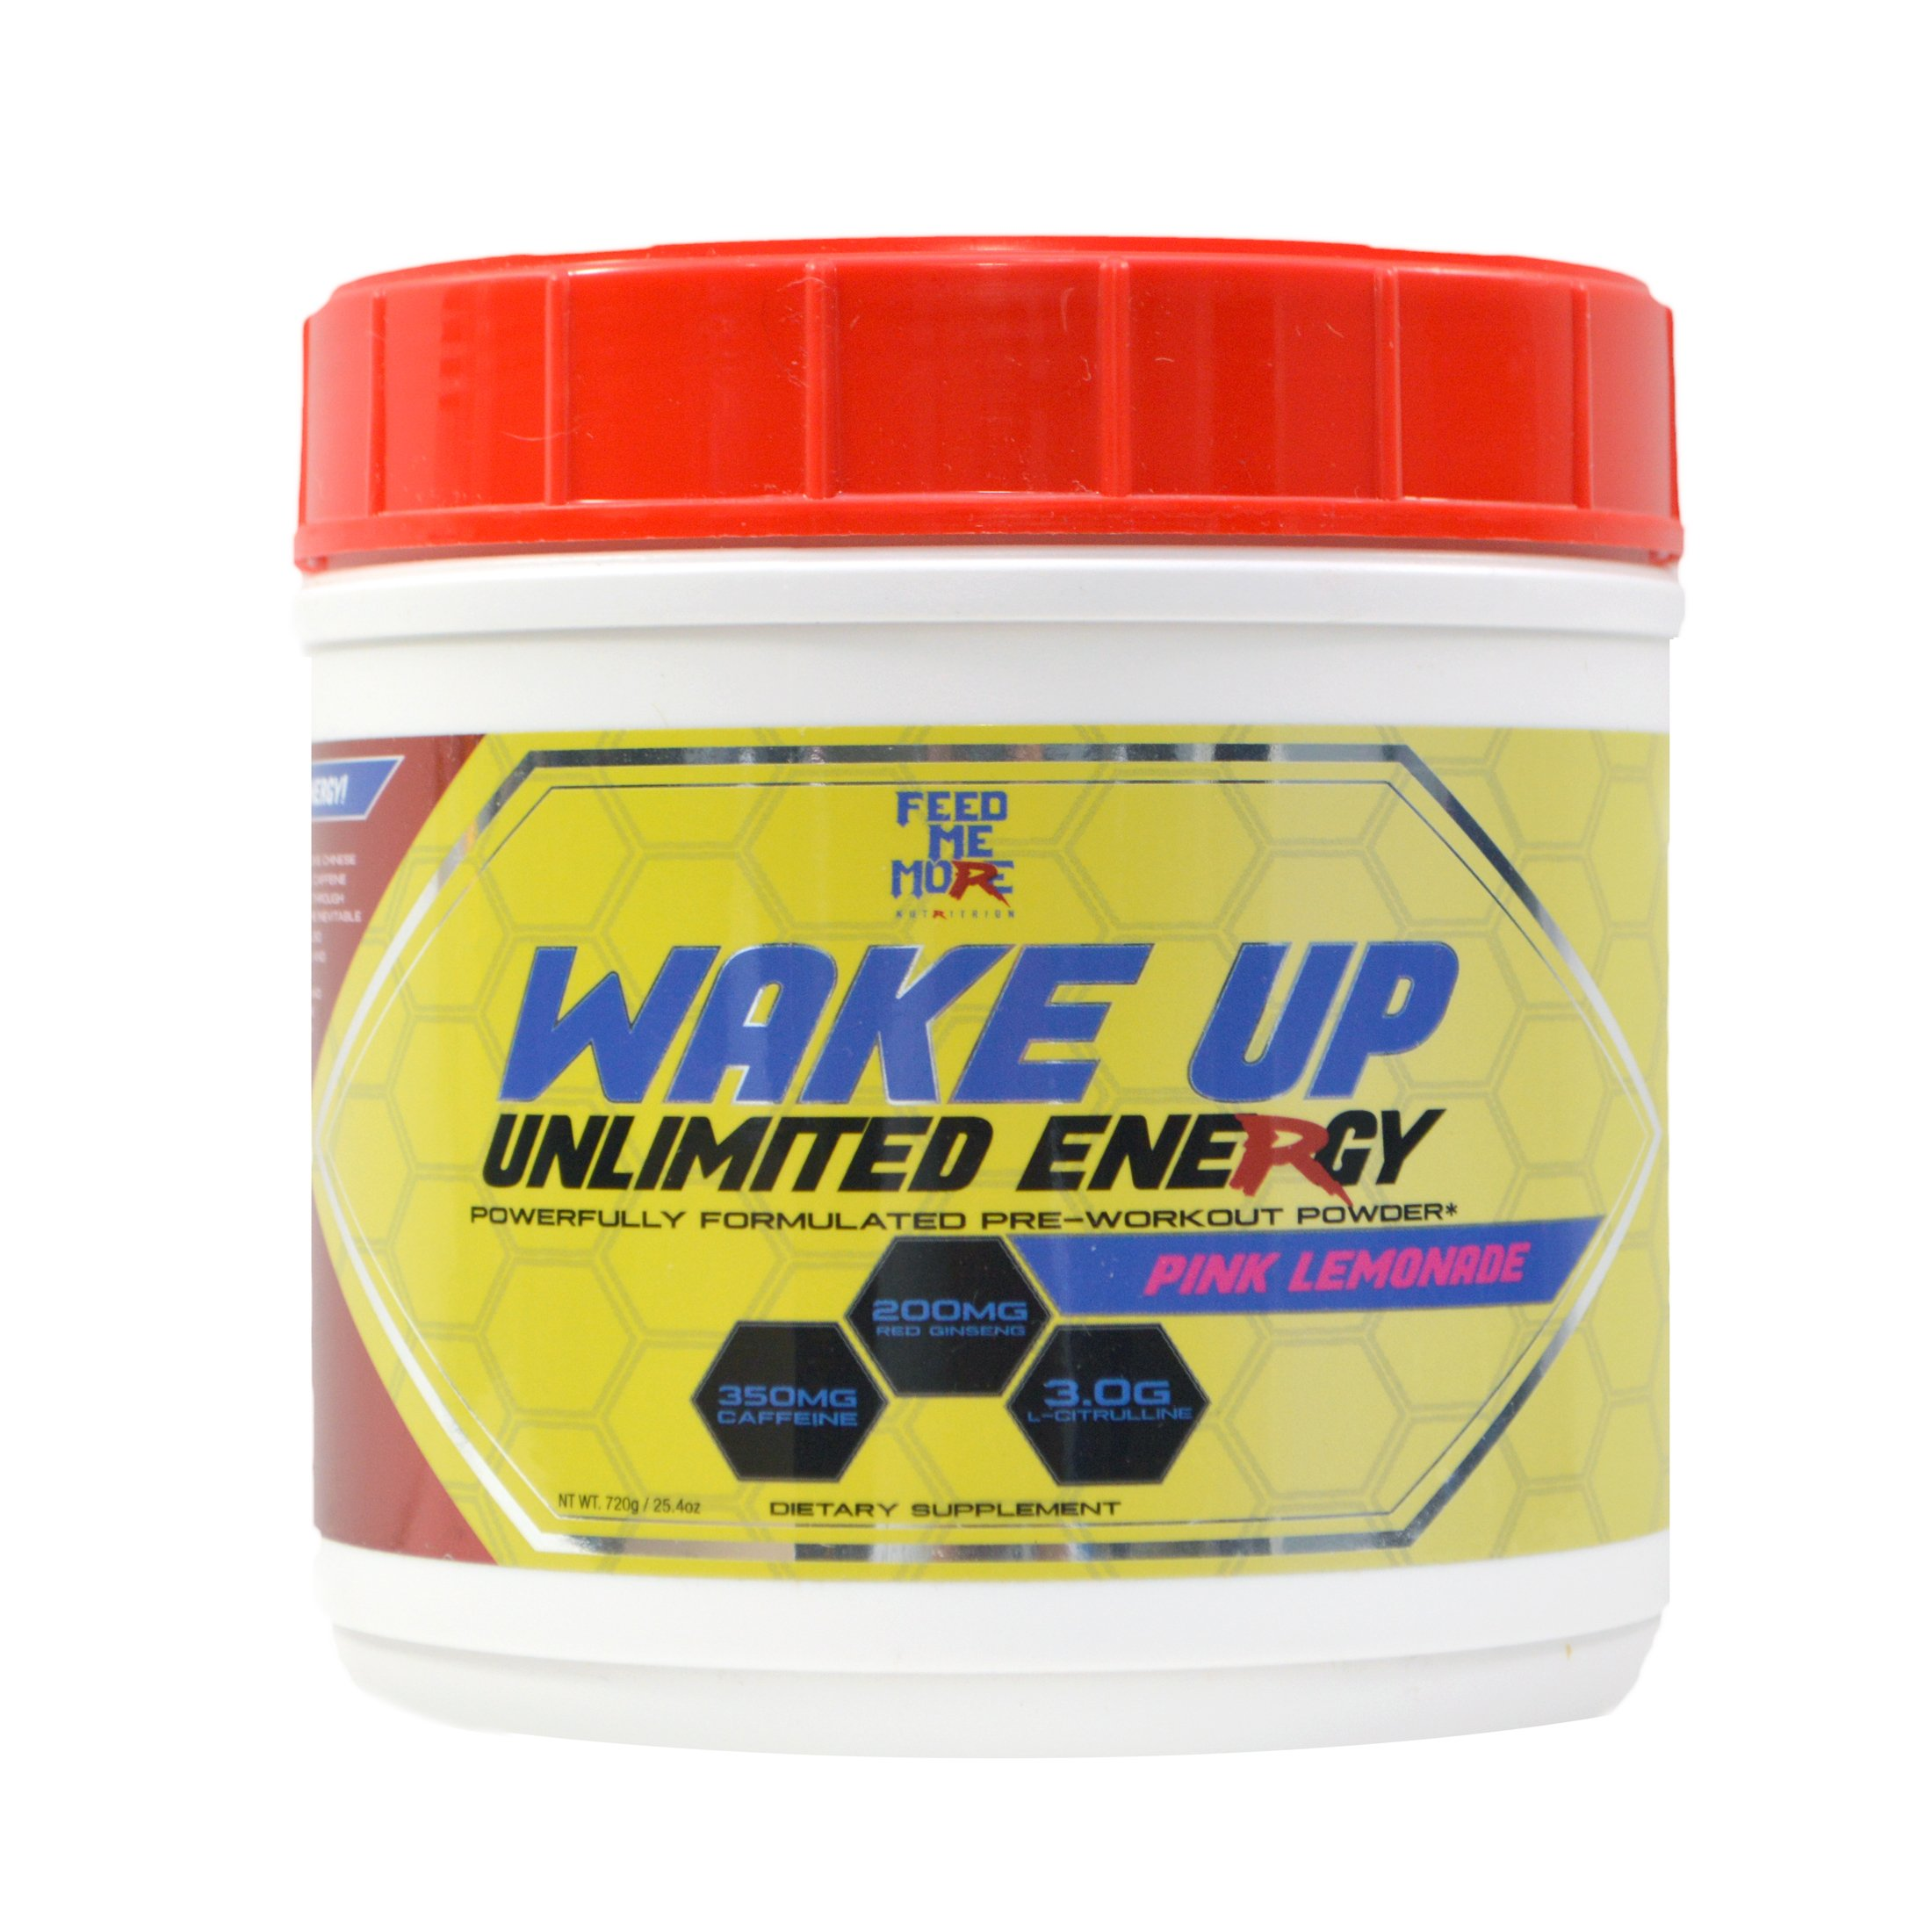 Wake up Pre Workout Powder Supplement Drink - #1 Unlimited Energy Powder Mix for Gym, Men or Women, Weight Lifting or Cardio, Non GMO, All Natural Gluten Free, Sweetened with Stevia (Pink Lemonade)